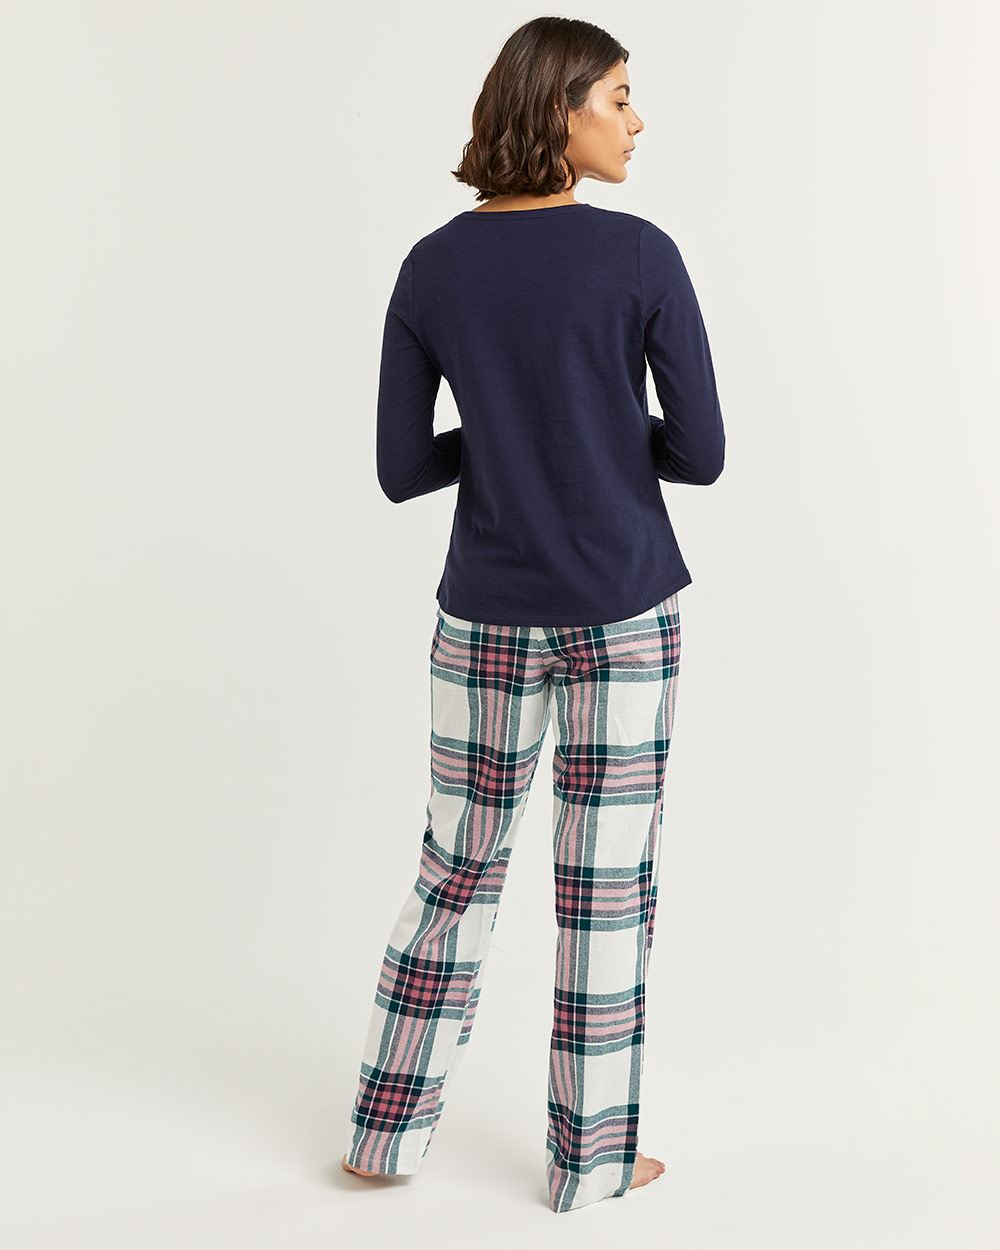 Cotton Pyjama Set with Flannel Pants